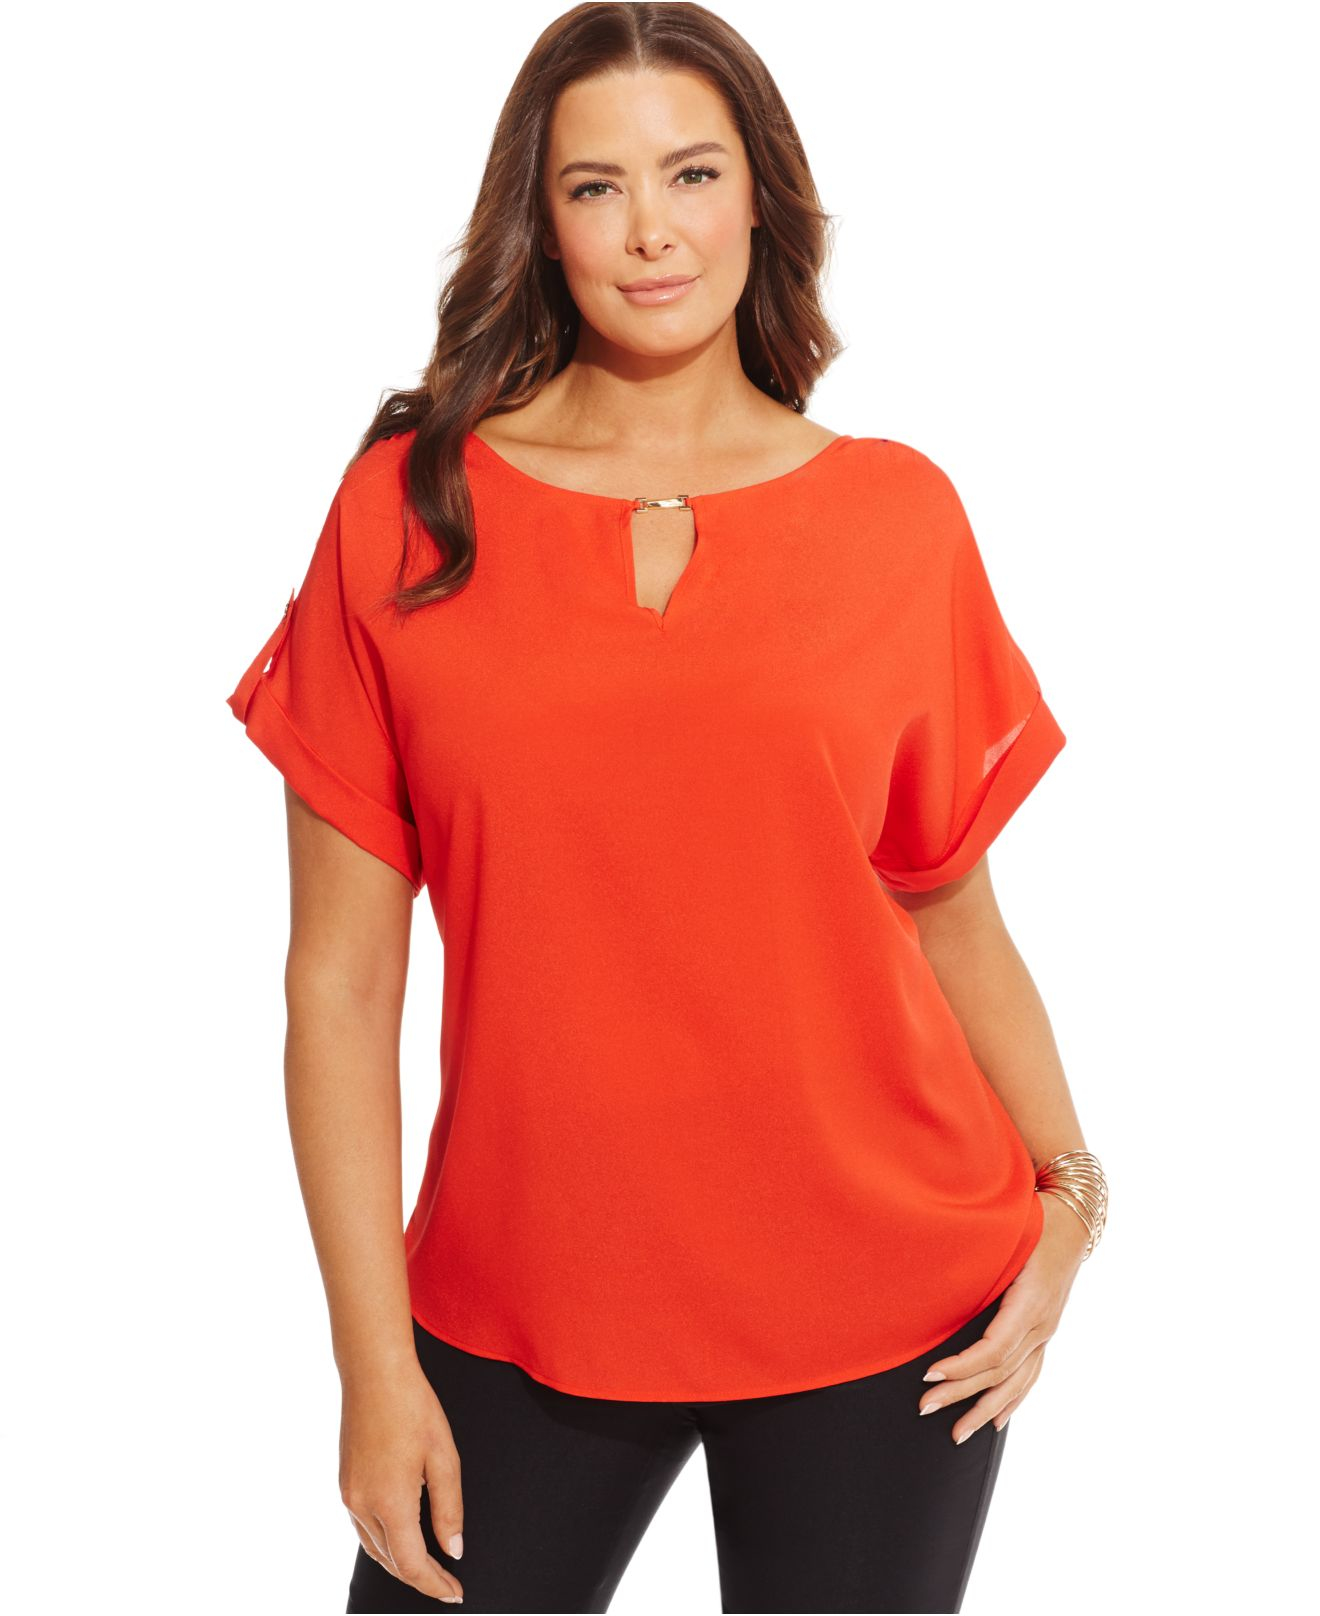 97d236d17665a7 Calvin Klein Plus Size Short-sleeve Keyhole Top in Red - Lyst